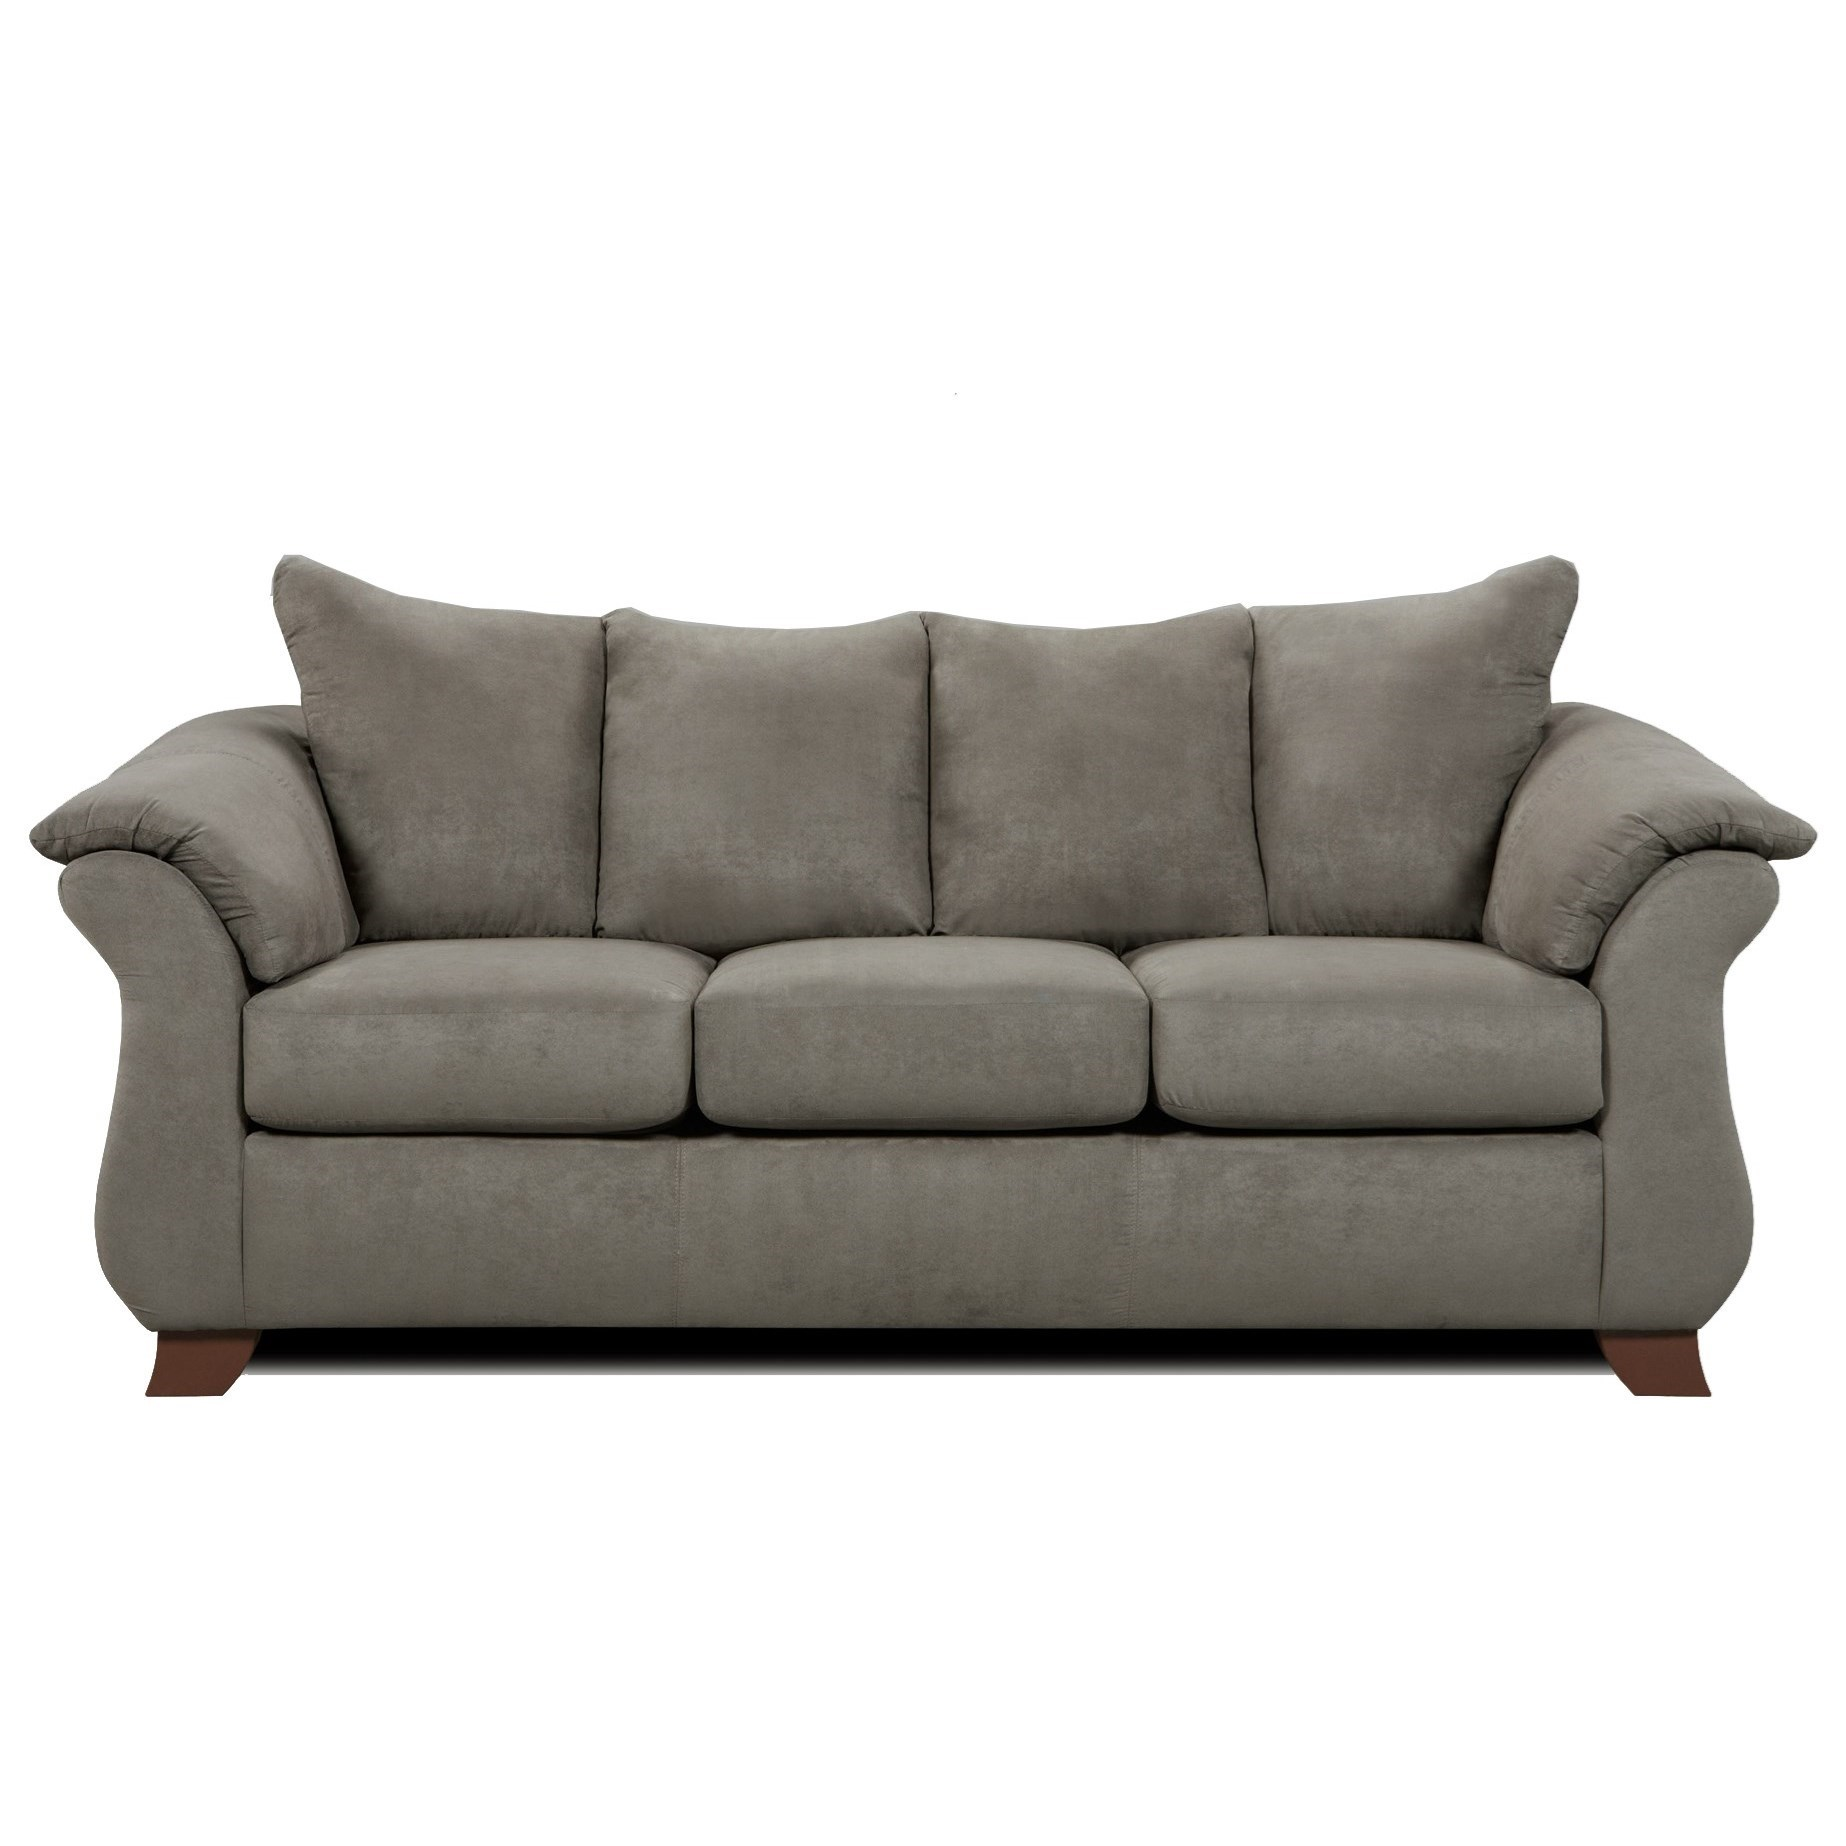 6700 Queen Sleeper Sofa by Affordable Furniture at Wilcox Furniture